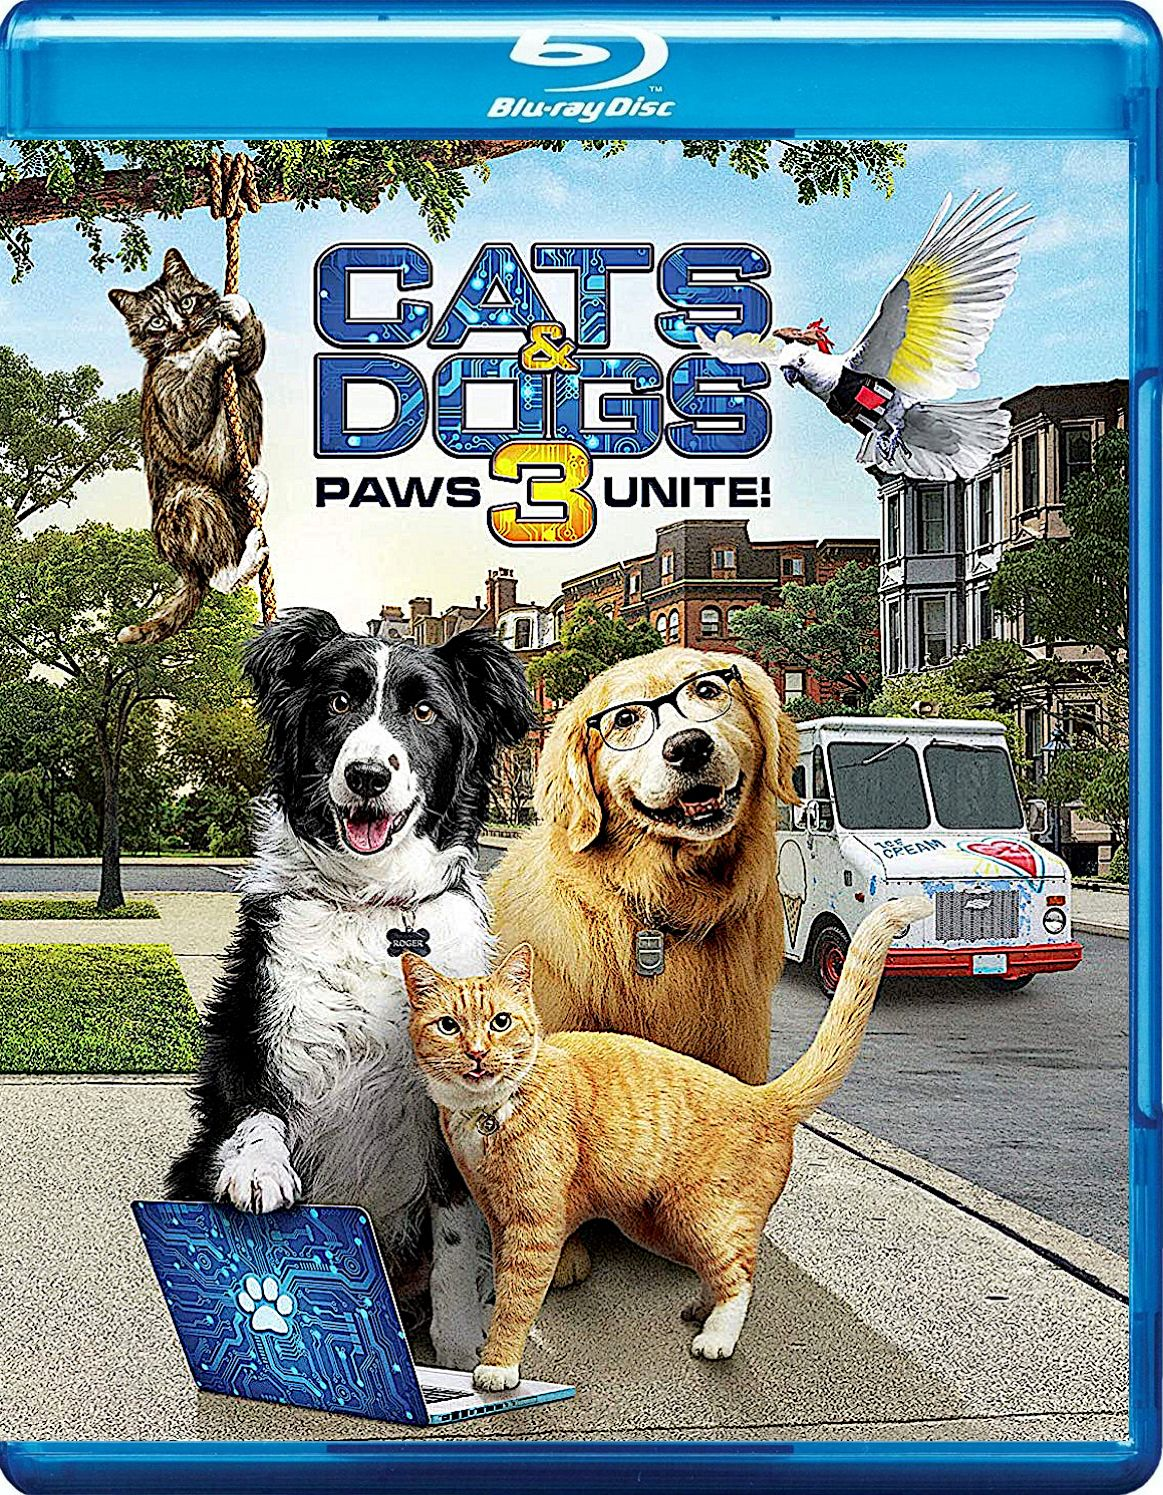 CATS & DOGS 3 PAWS UNITE! BLURAY (WARNER) in 2020 Dog